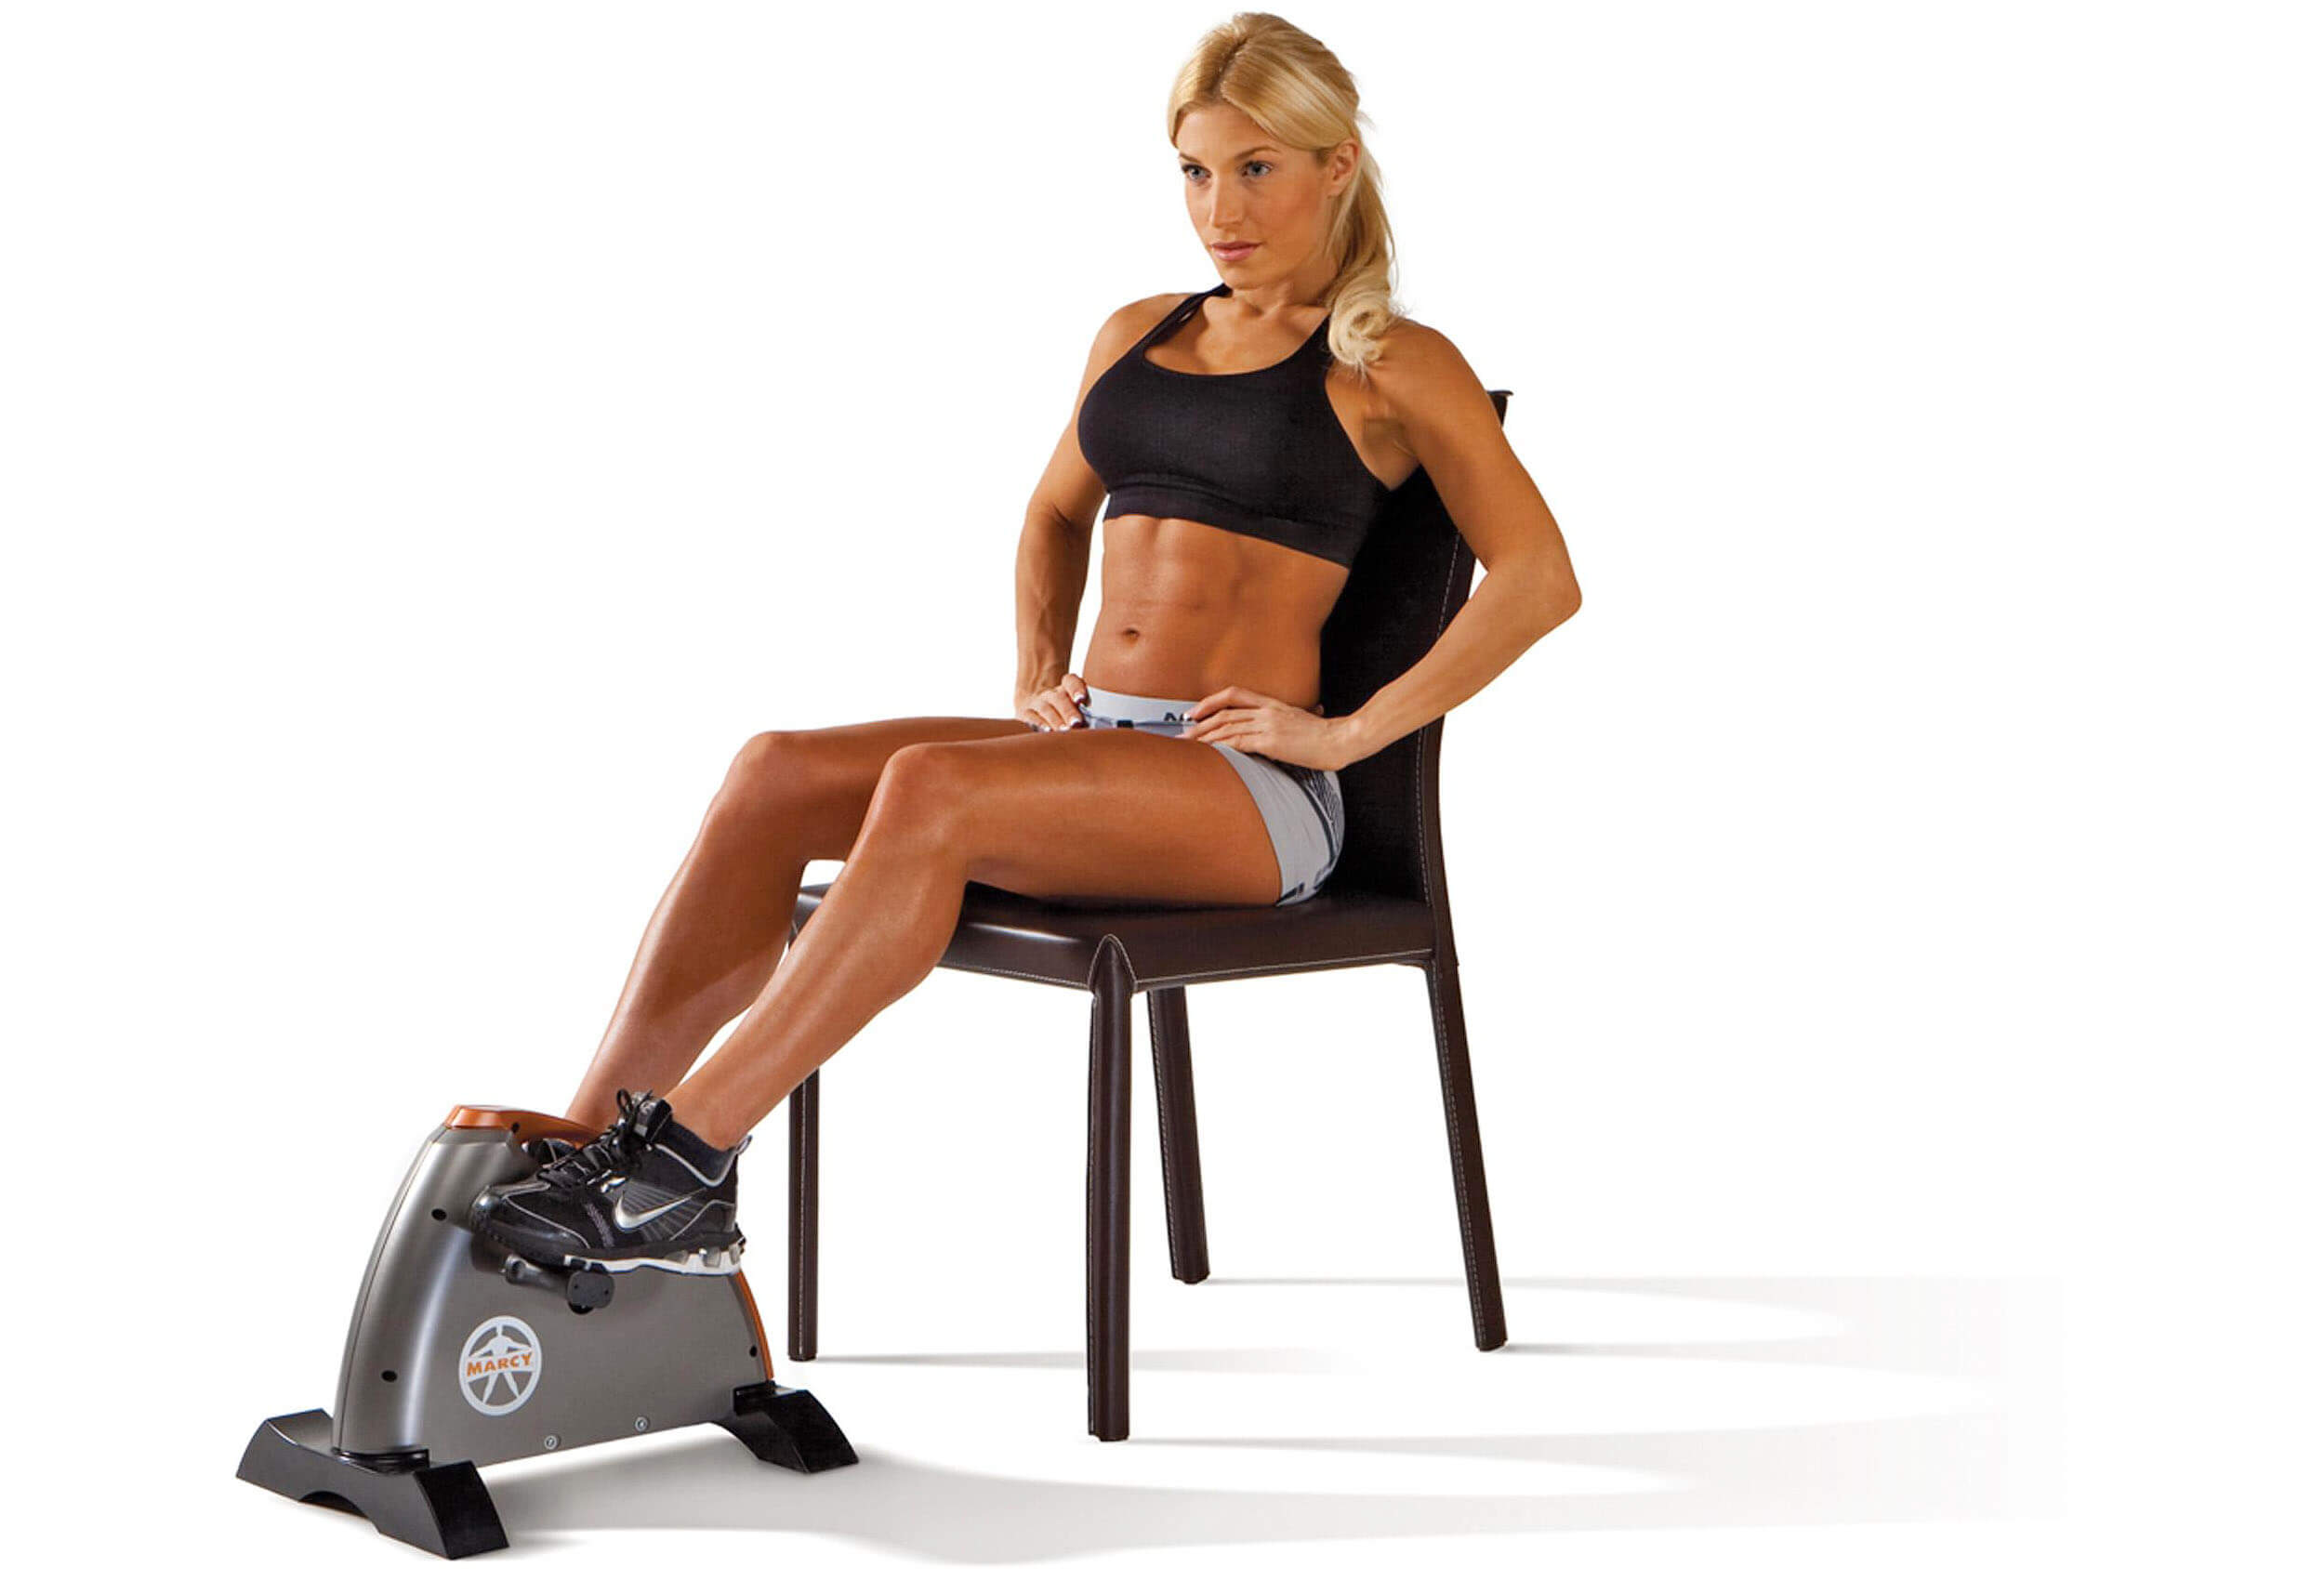 Marcy Cardio Mini-Cycle Exercise Bike